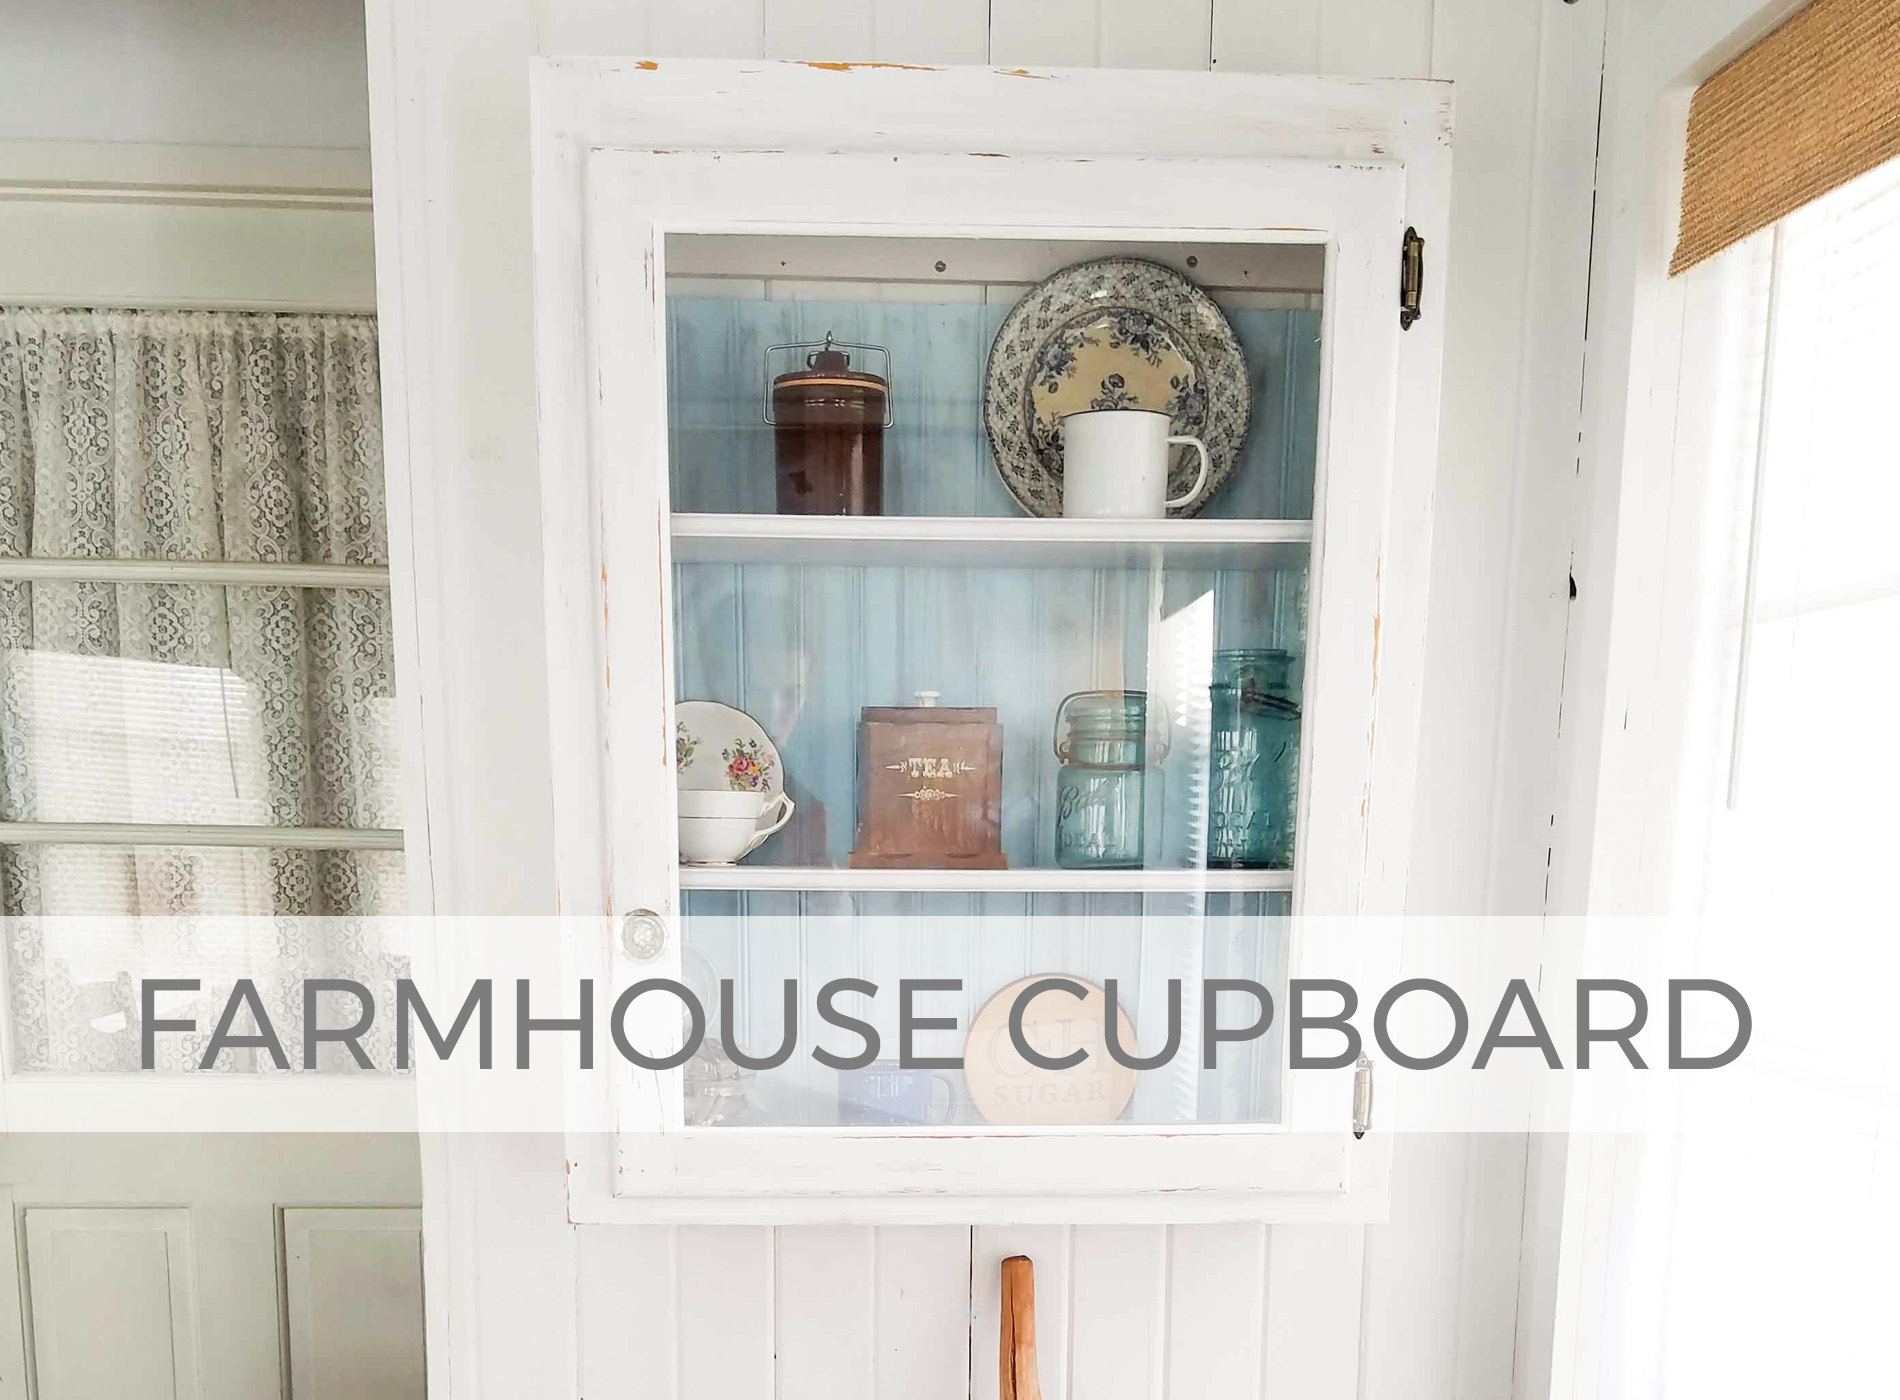 Farmhouse Cupboard by Larissa of Prodigal Pieces | prodigalpieces.com #prodigalpieces